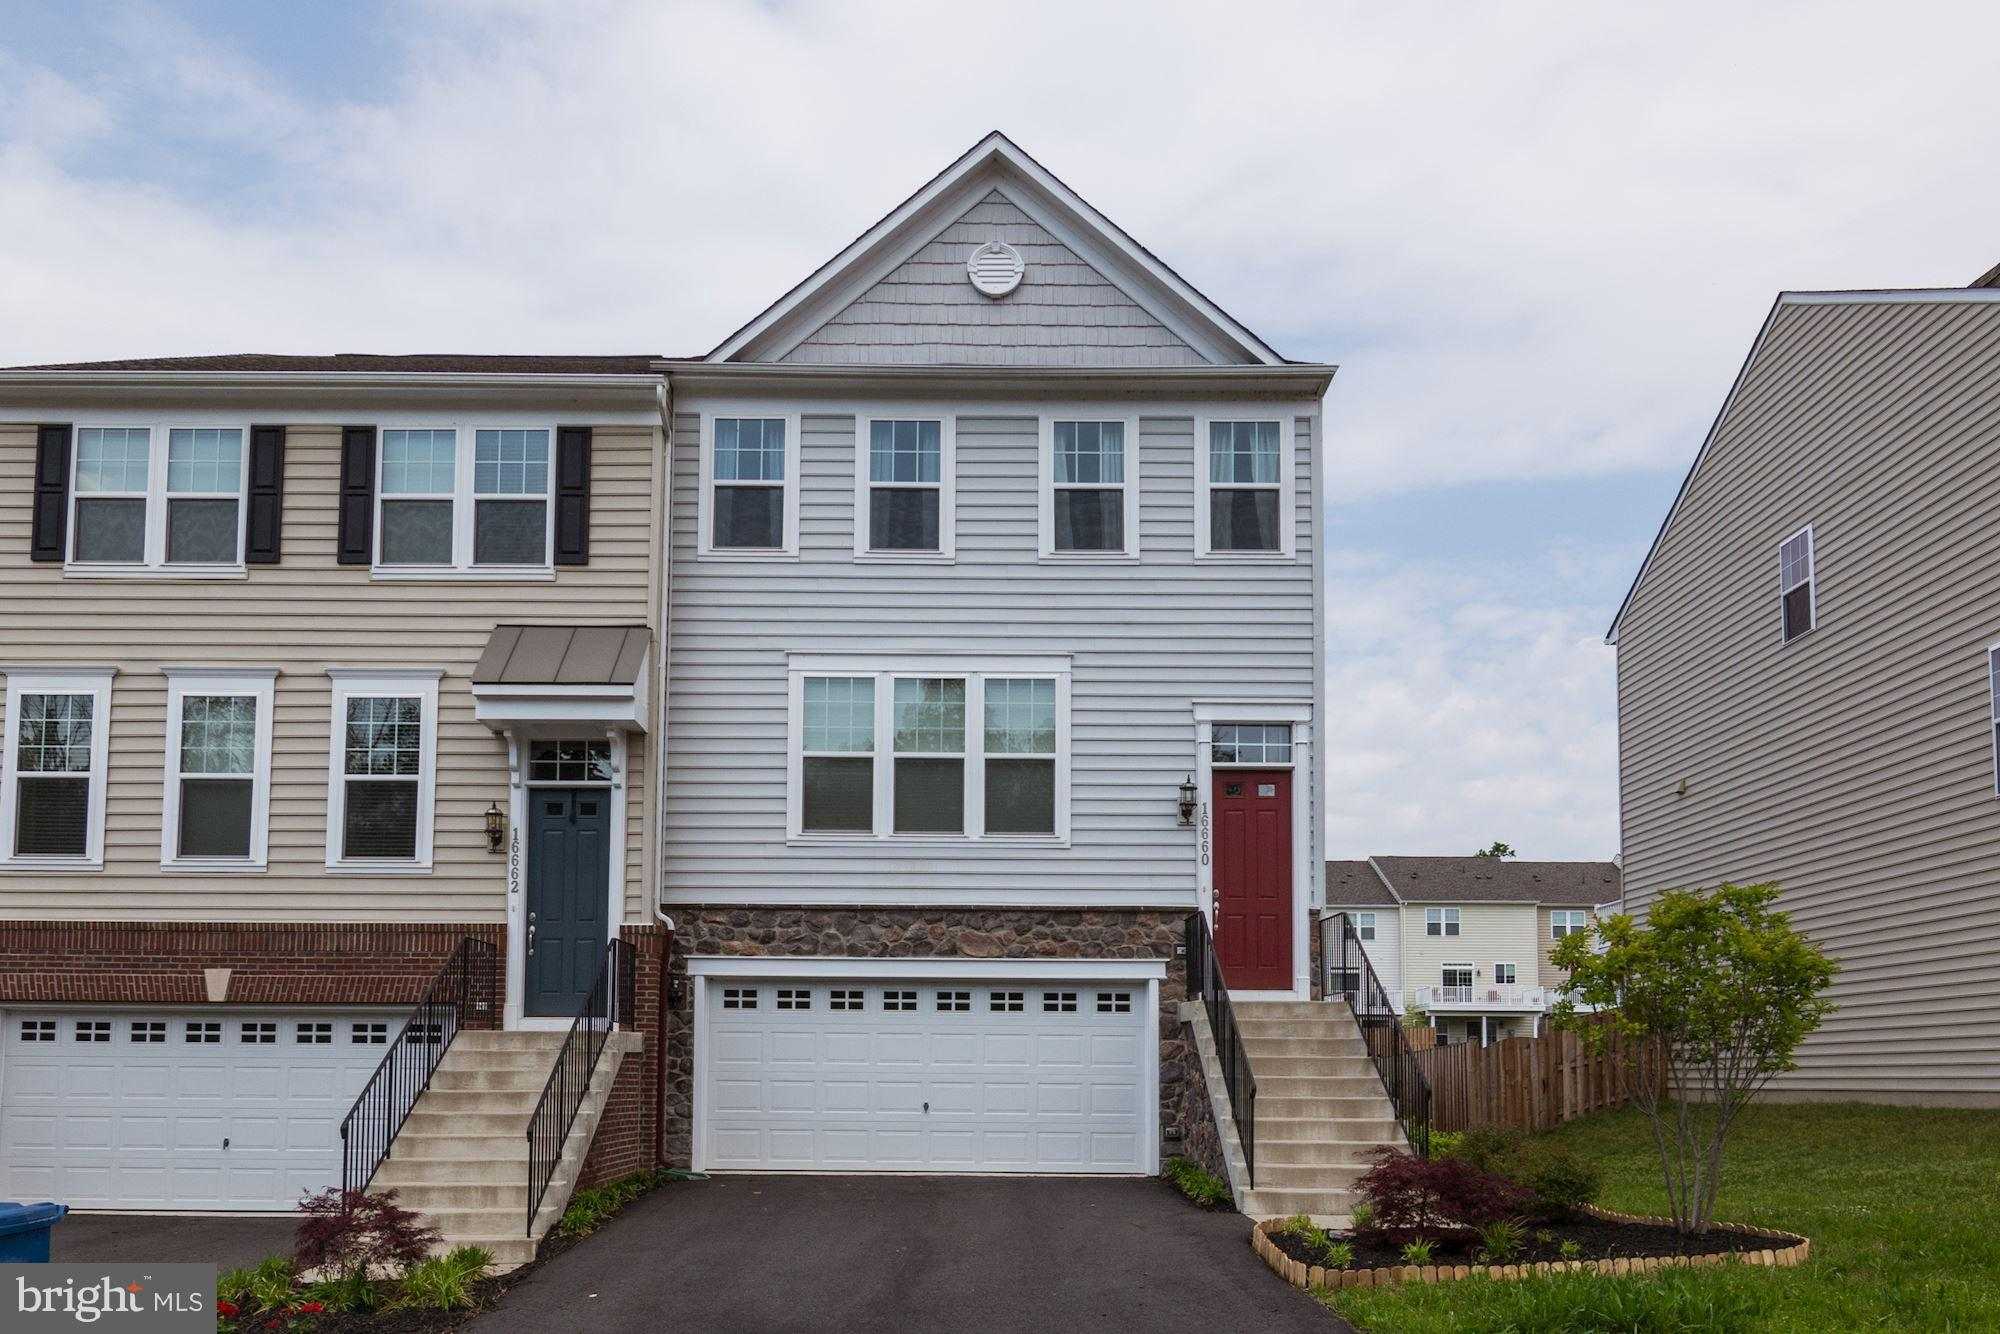 STUNNING STANLEY MARTIN END UNIT WITH HUGE FENCED IN YARD***UPGRADES THROUGHOUT WITH GORGOUS HARDWOODS, GRANITE, STAINLESS, BRIGHT, OPEN & AIRY***LARGE DECK**SPACIOUS BEDROOMS WITH SUPER MASTER SUITE & FANTASTIC BATHROOM WITH LARGE WALK-IN CLOSET***2ND & 3RD BEDROOMS ARE GOOD SIZES***GOURMET KITCHEN***